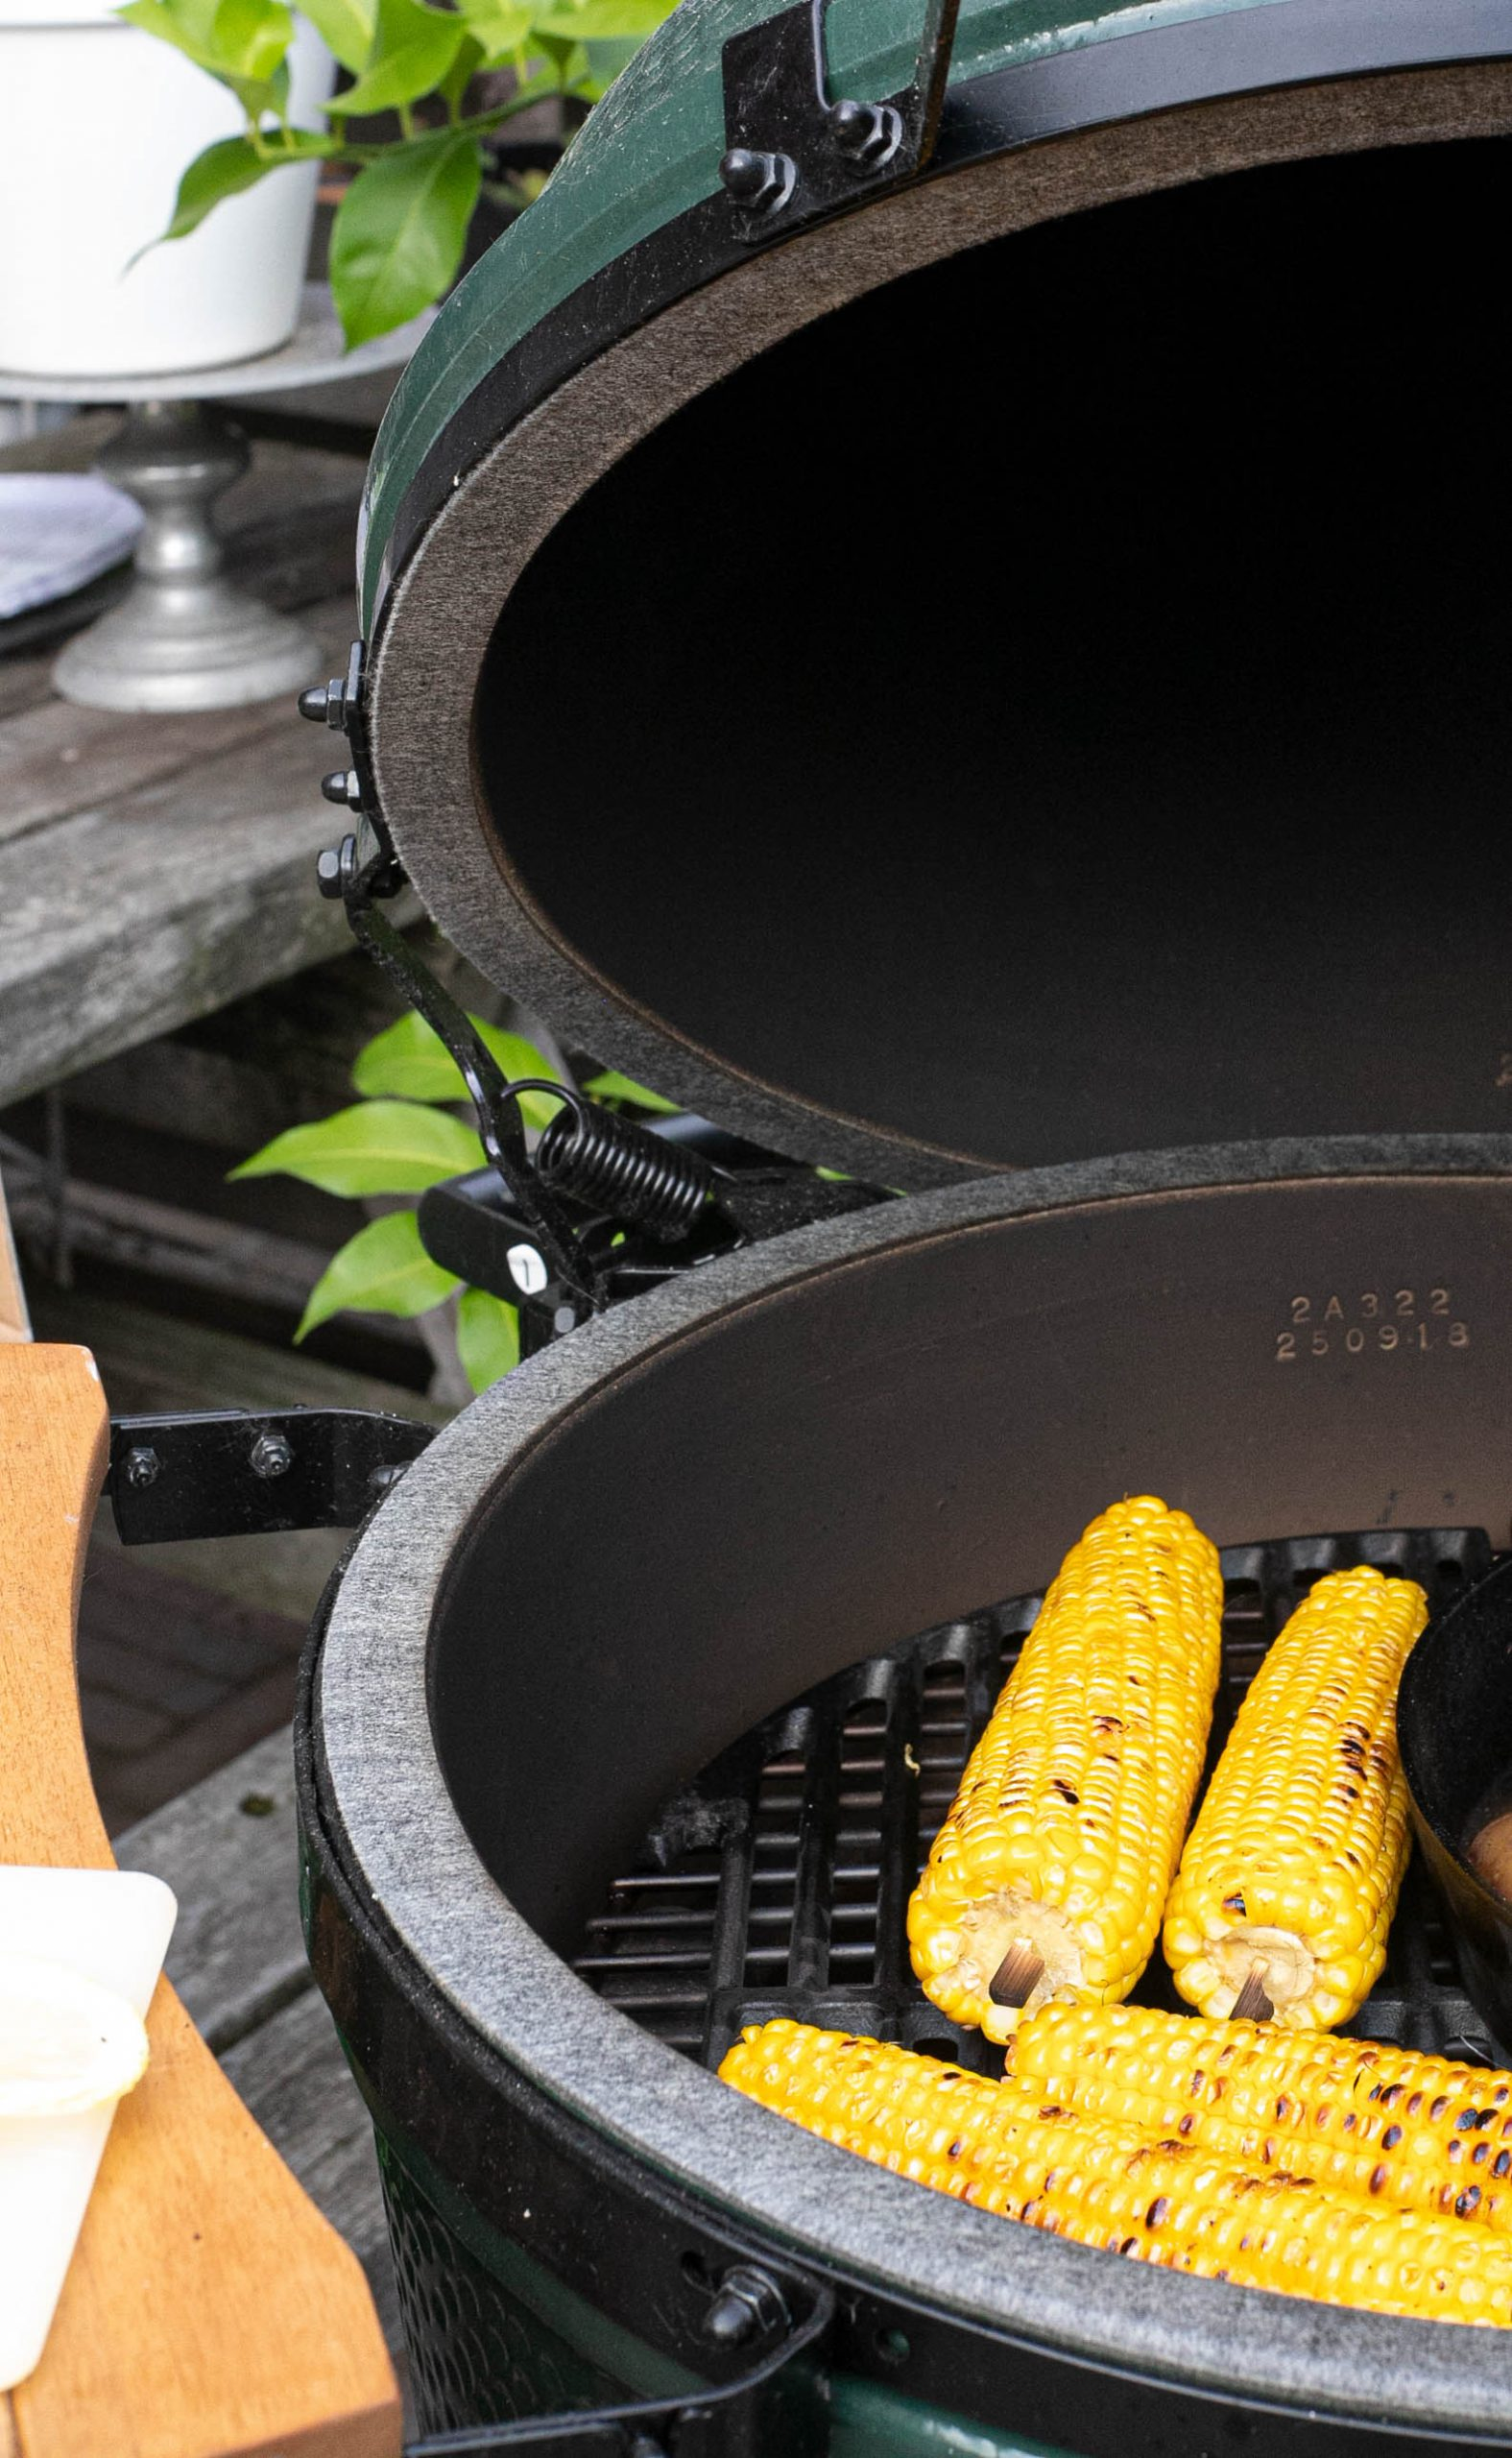 Mais van de Big Green Egg met citroenboter & bieslook 'The lemon kitchen